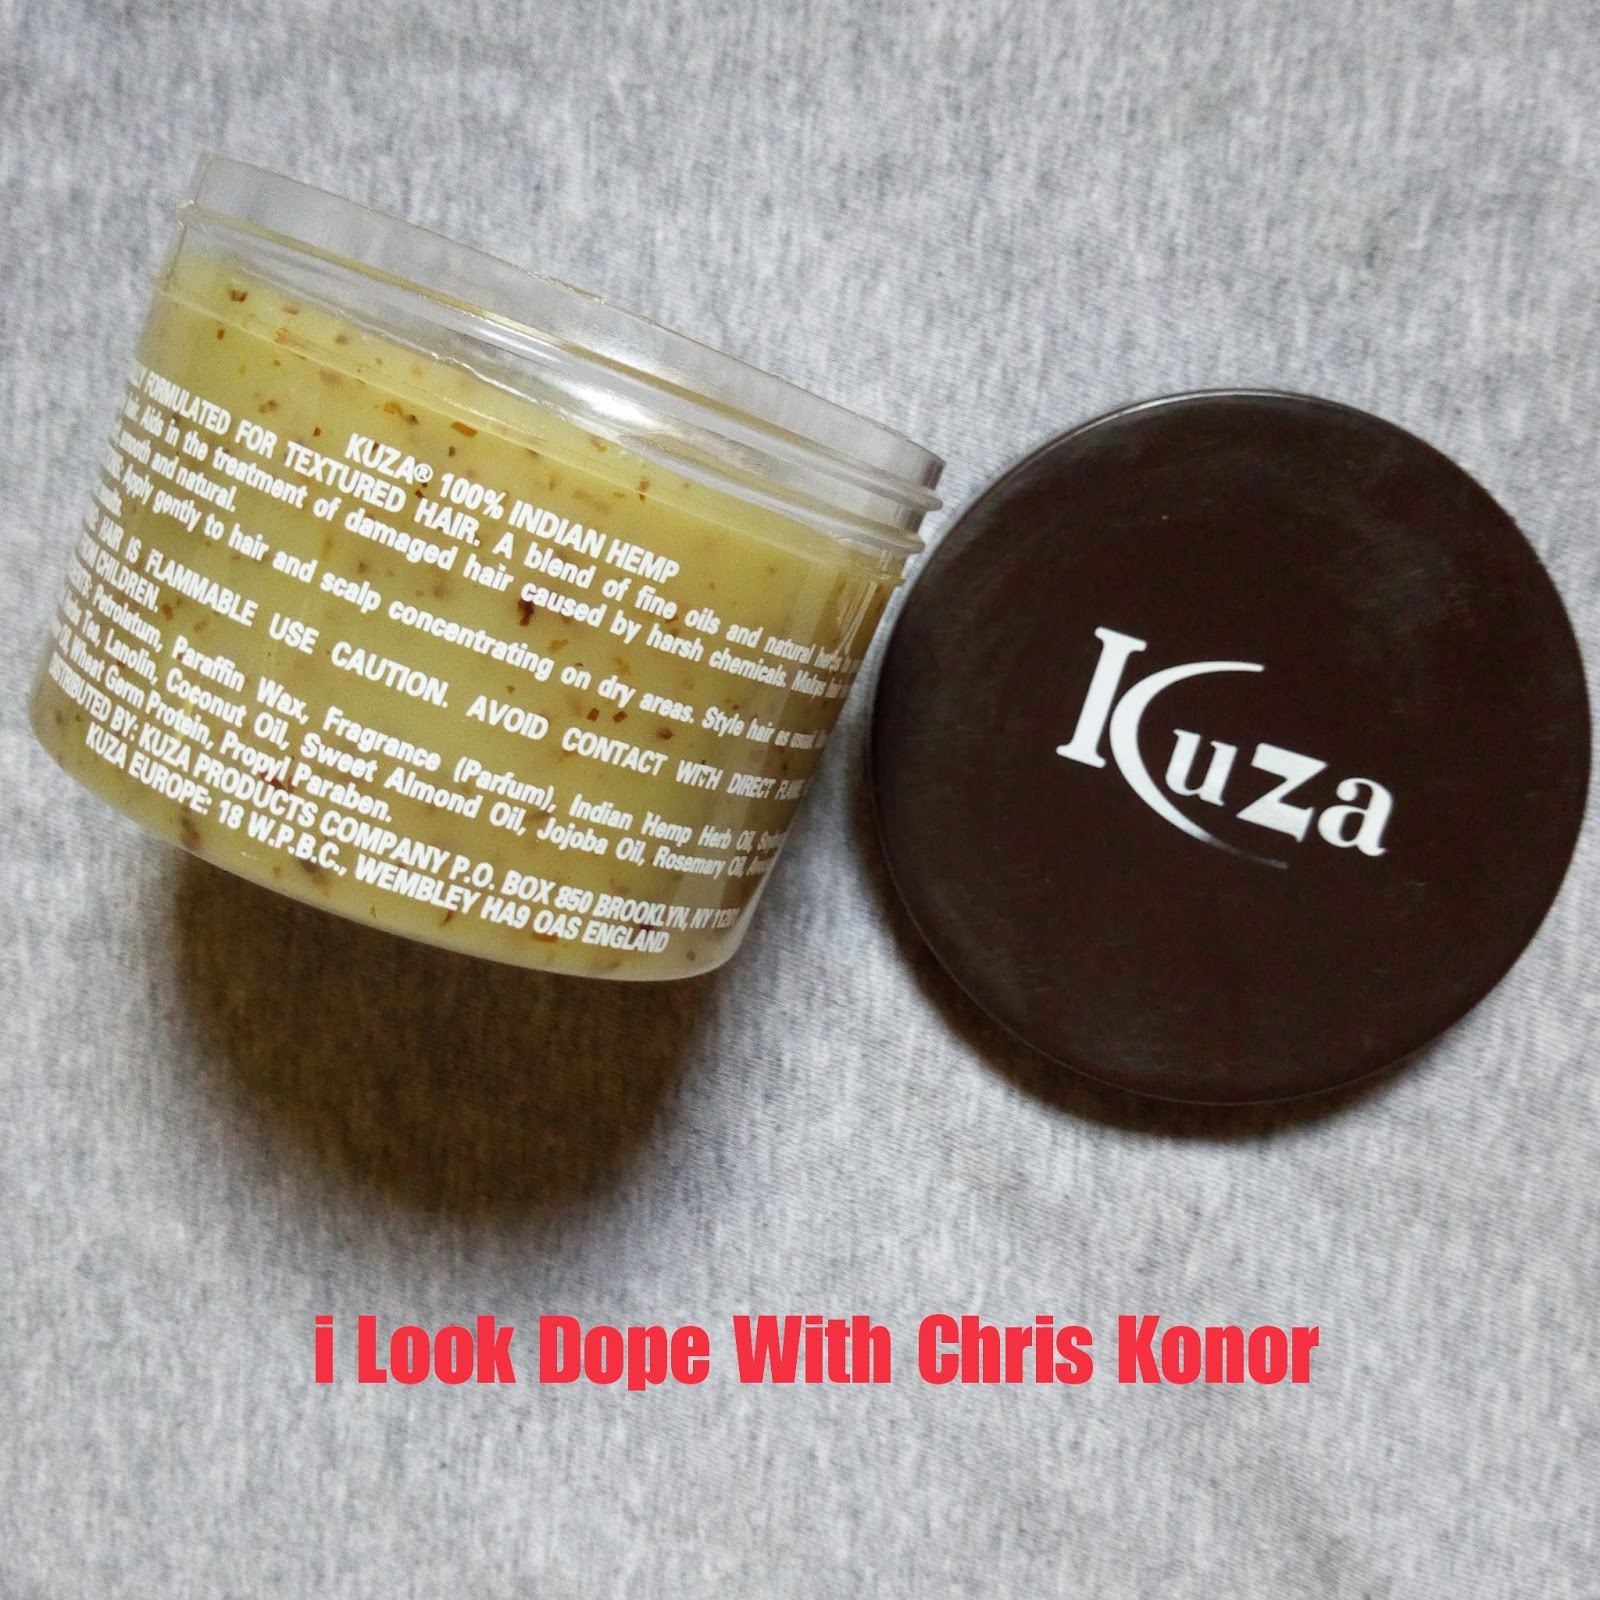 kuza 100 indian hemp, kuza 100 indian hemp reviews, kuza 100 indian hemp hair scalp treatment, kuza 100 indian hemp ingredients, kuza 100 indian hemp oil reviews, kuza 100 indian hemp aviskuza 100 indian hemp, kuza 100 indian hemp oil, kuza 100 indian hemp reviews, kuza 100 indian hemp hair and scalp treatment, kuza 100 indian hemp ingredients, kuza 100 indian hemp oil reviews, kuza 100 indian hemp avis, kuza 100 indian hemp hair and scalp treatment ingredients, kuza 100 indian hemp hair scalp treatment, ilookdope, ilookdope.com, nigeria best skin care blog africa, i look dope with chris konor